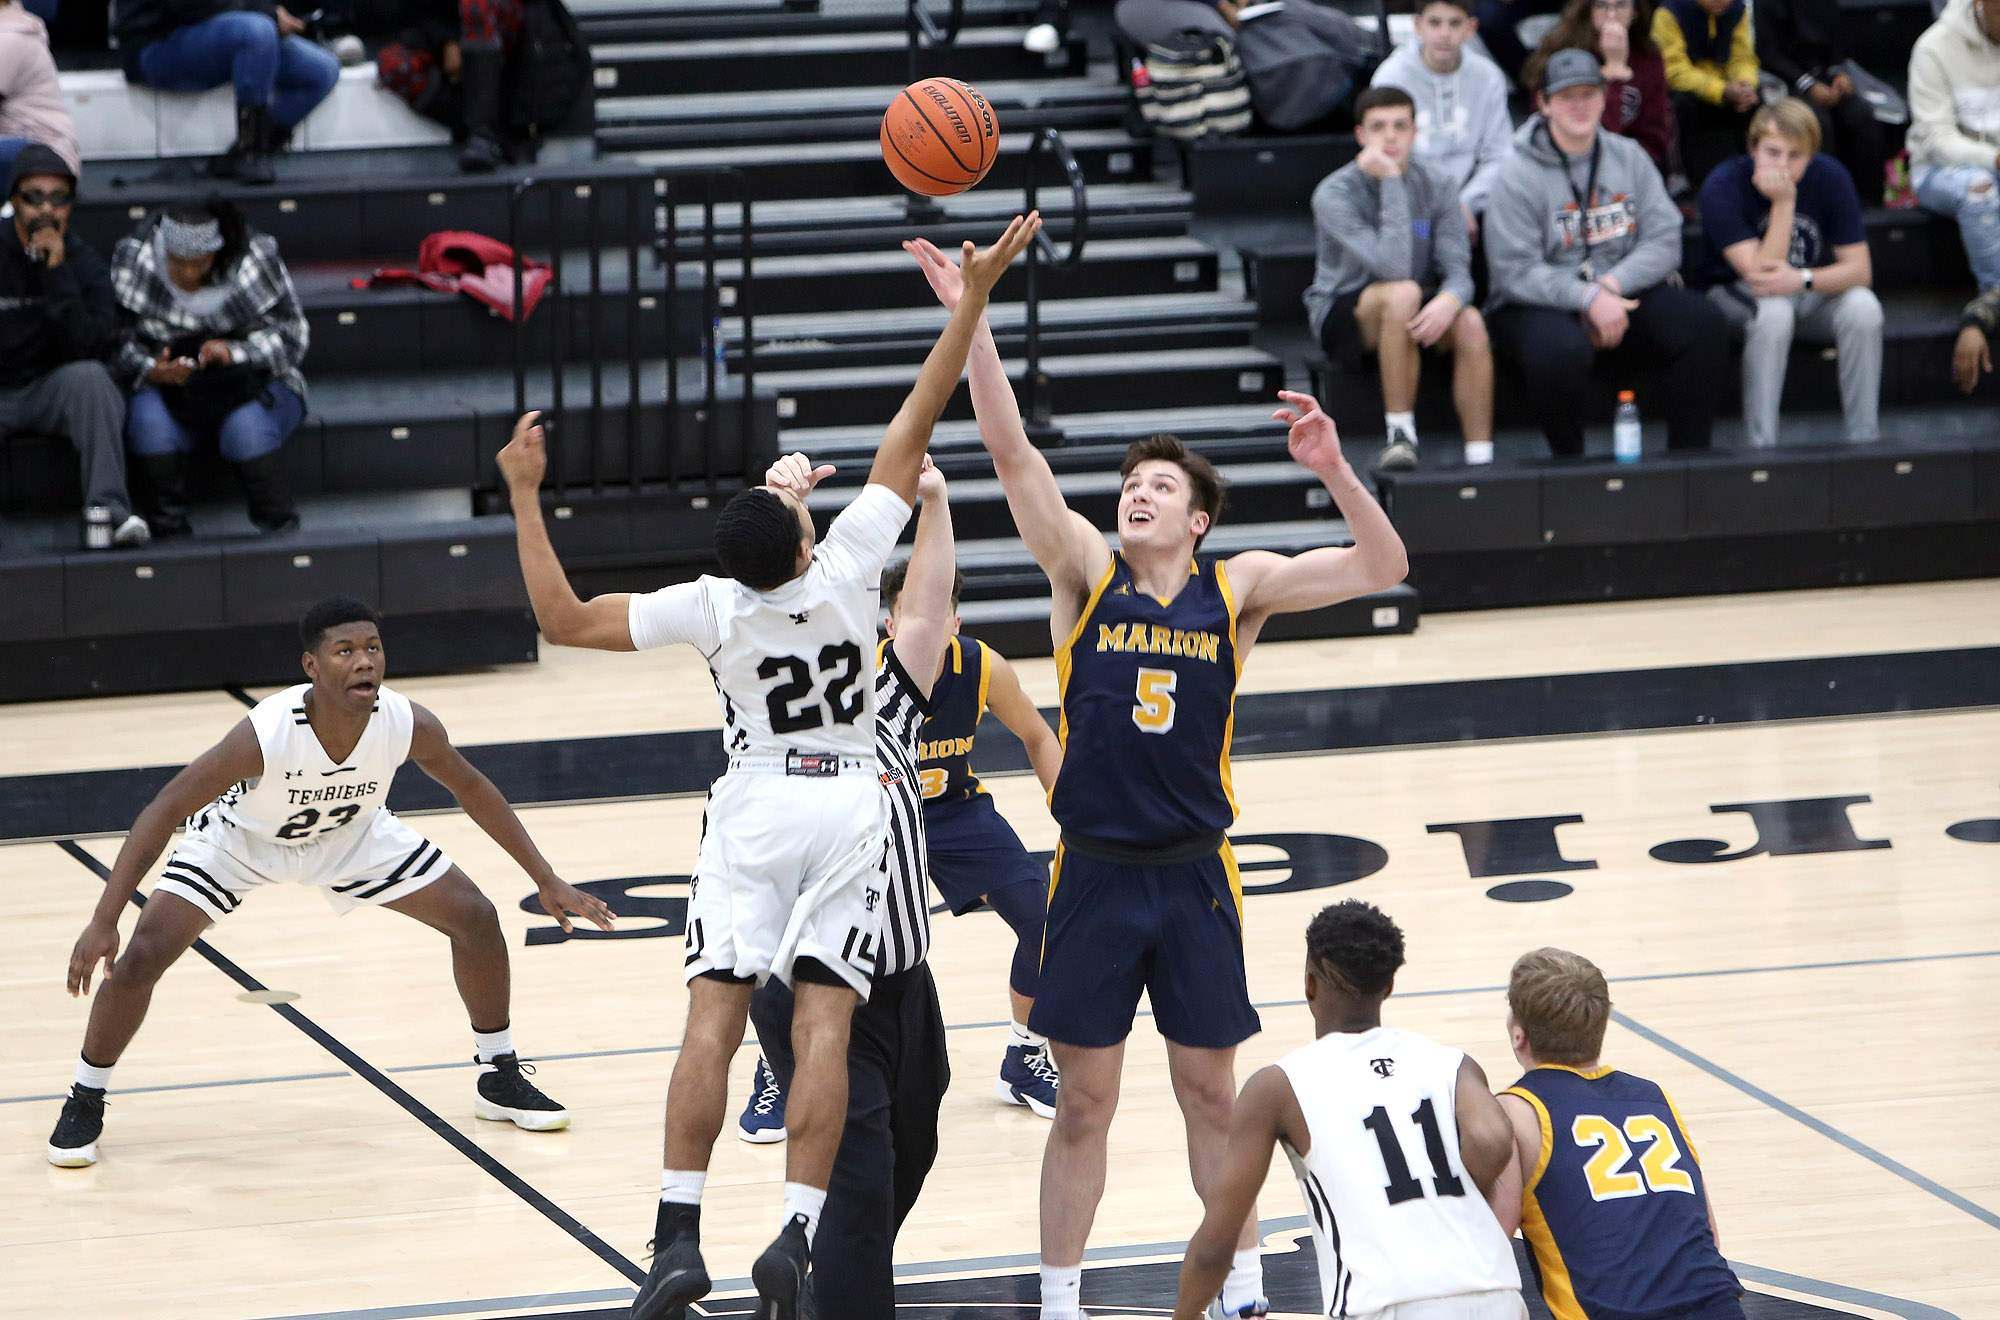 Marion's Jackson Connor and Carbondale's Jakeba Burleigh compete for the opening tip Saturday.